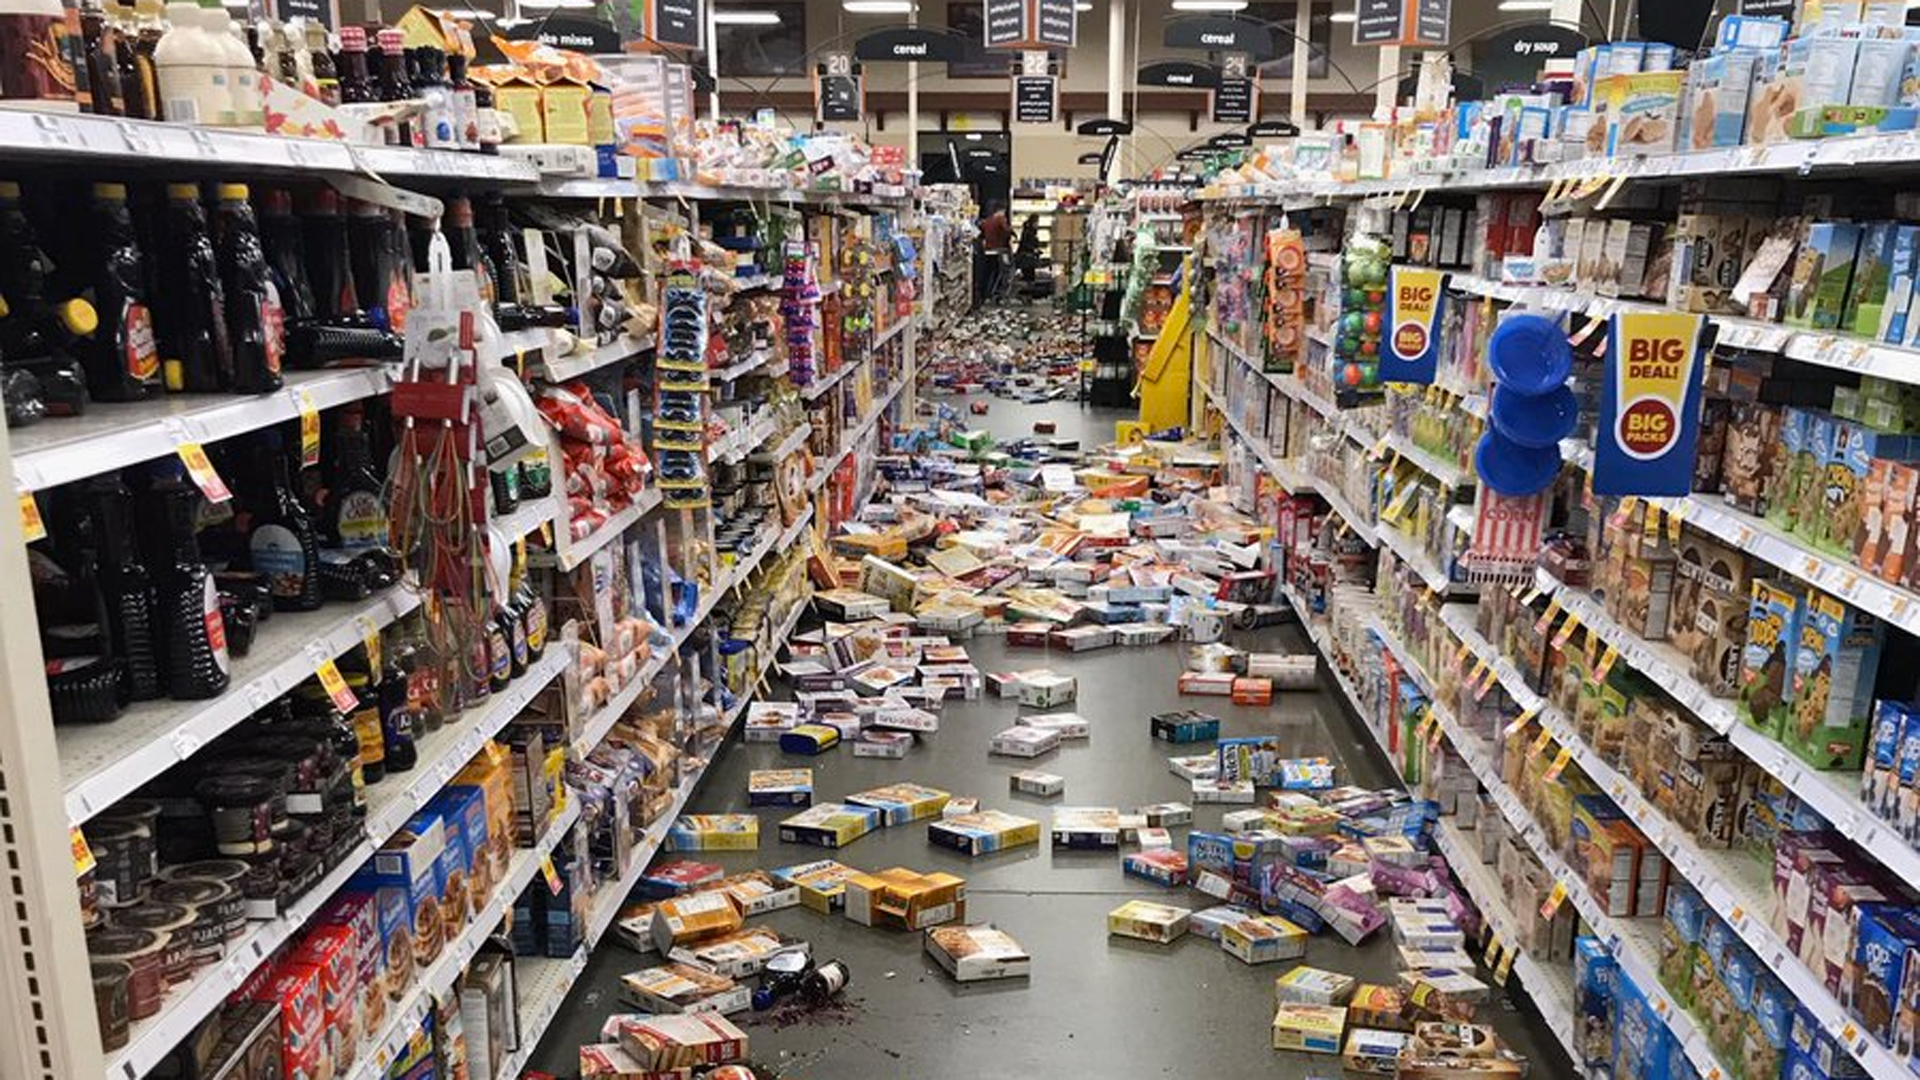 Damage at a grocery store is seen in an image provided by @eg_brownson via Twitter.